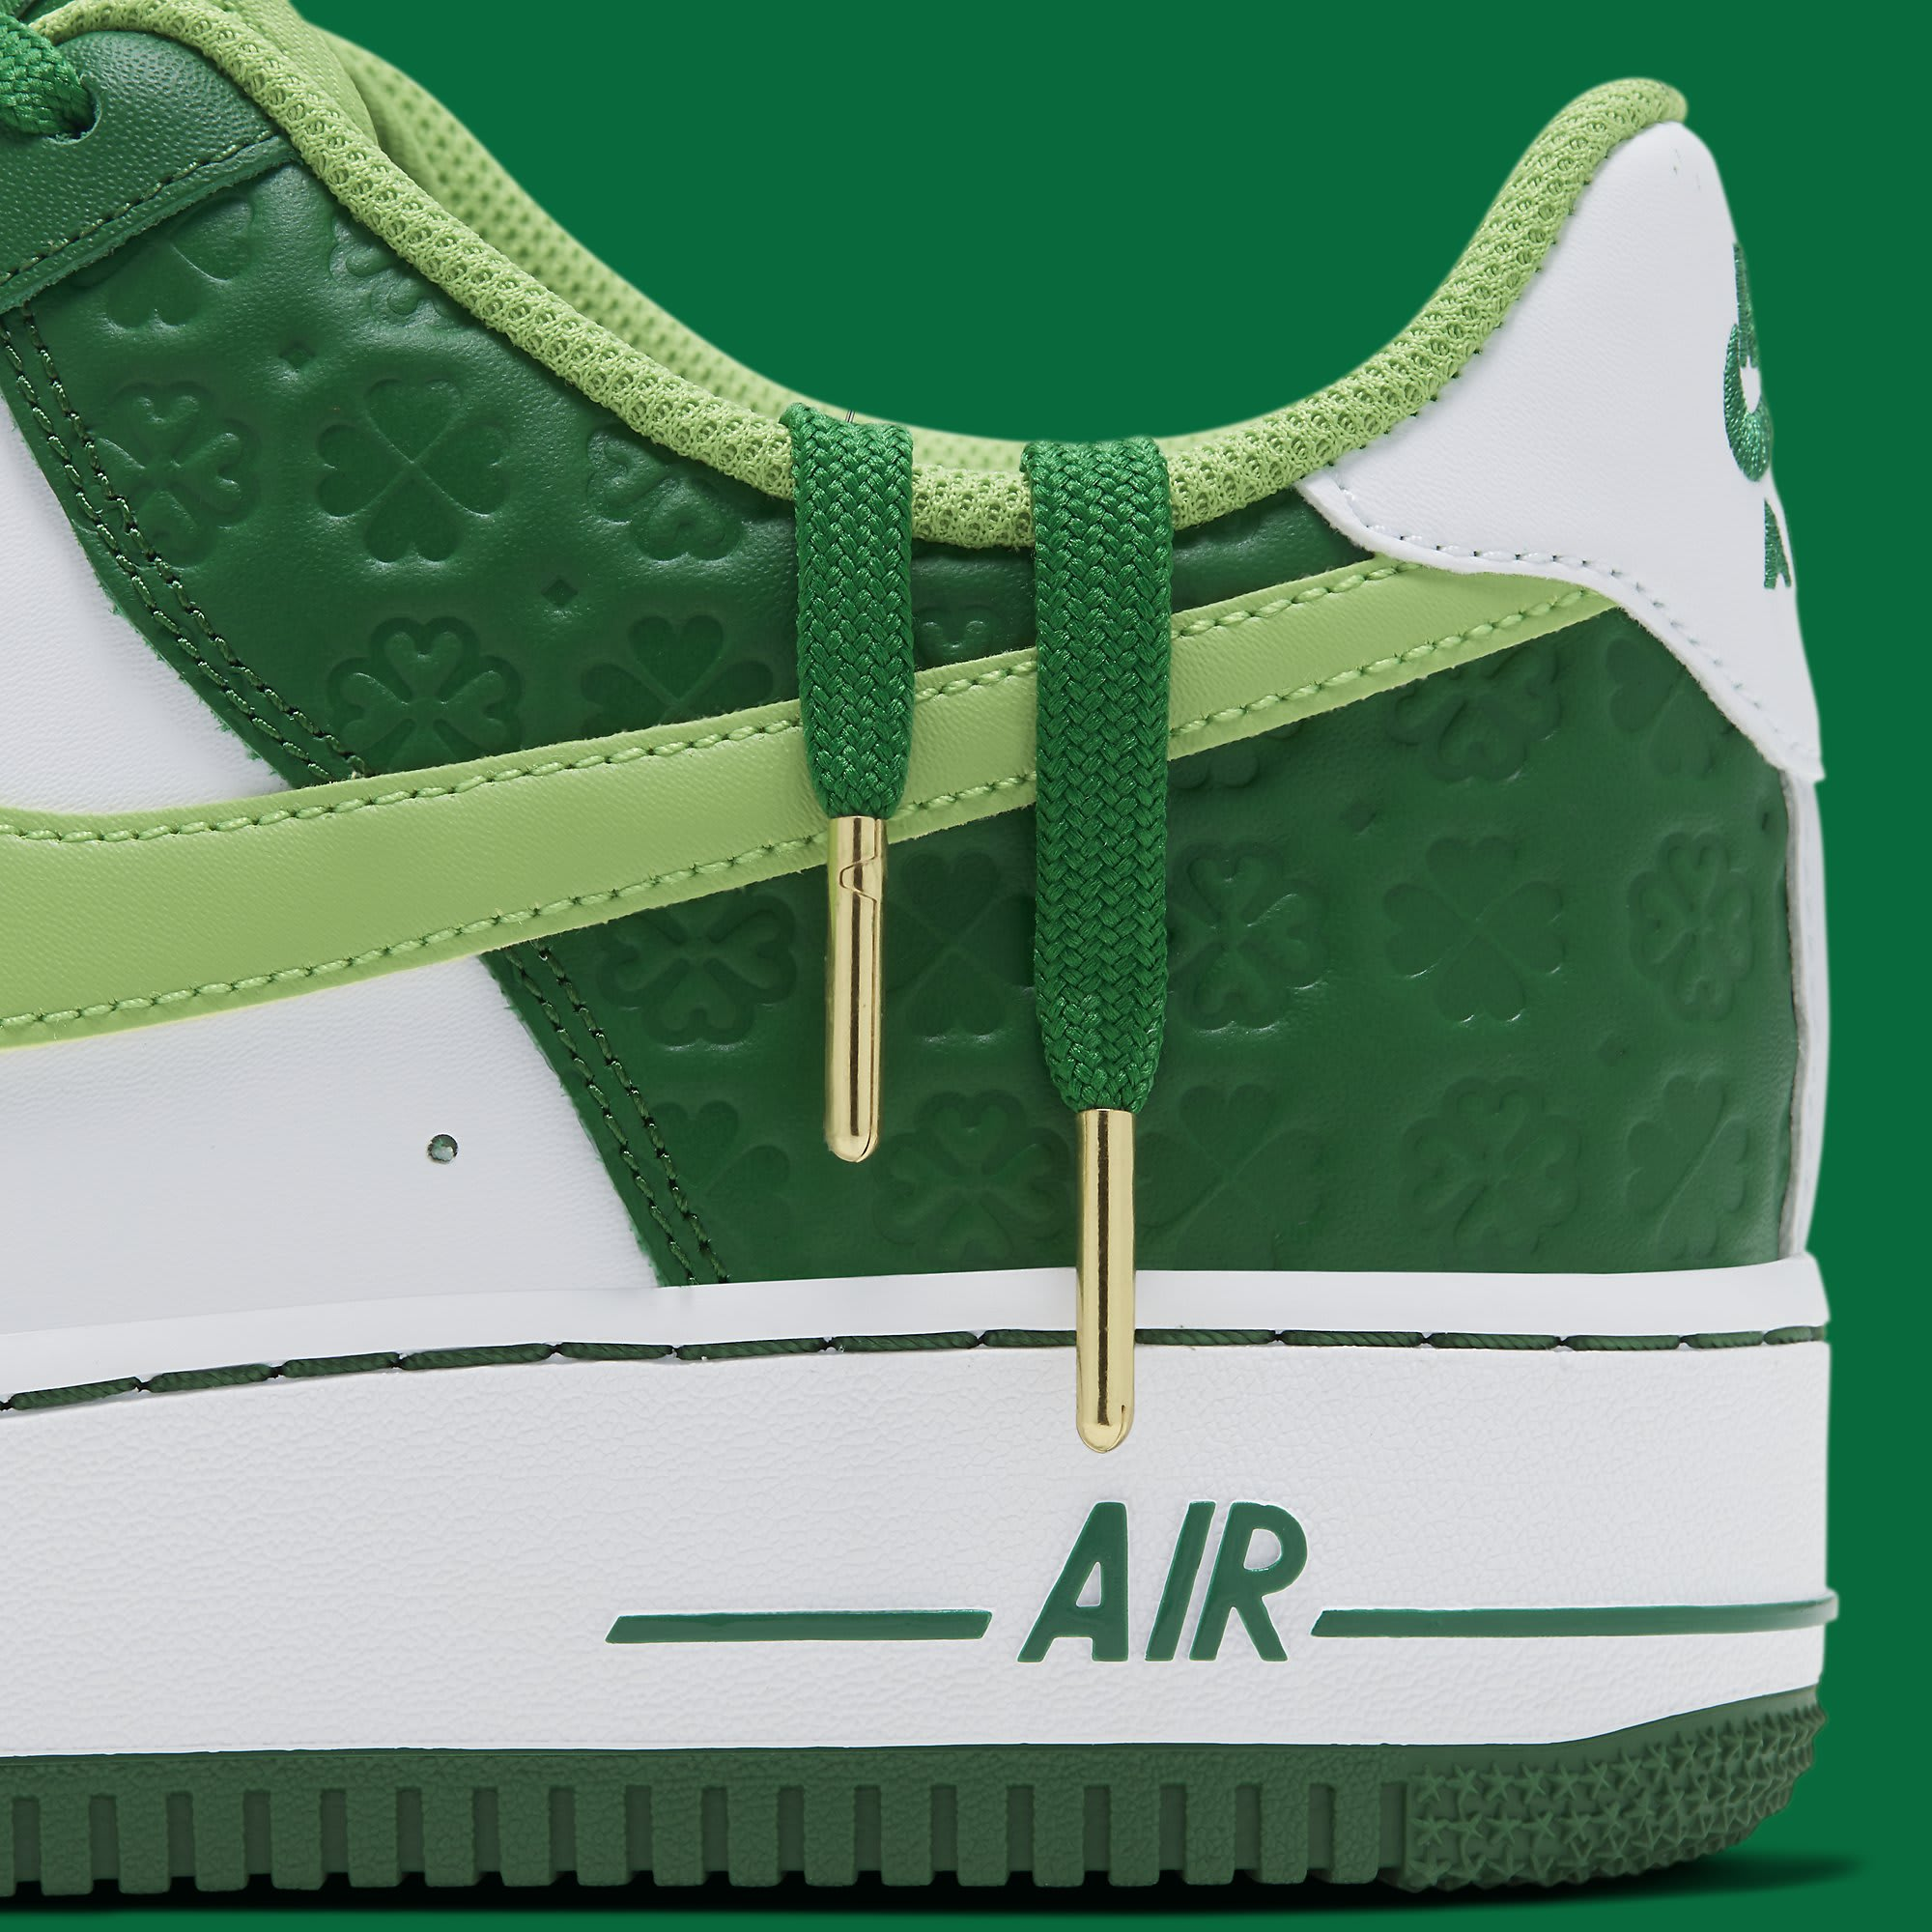 Nike Air Force 1 Low 'St. Patrick's Day' DD8458-300 Shoelaces